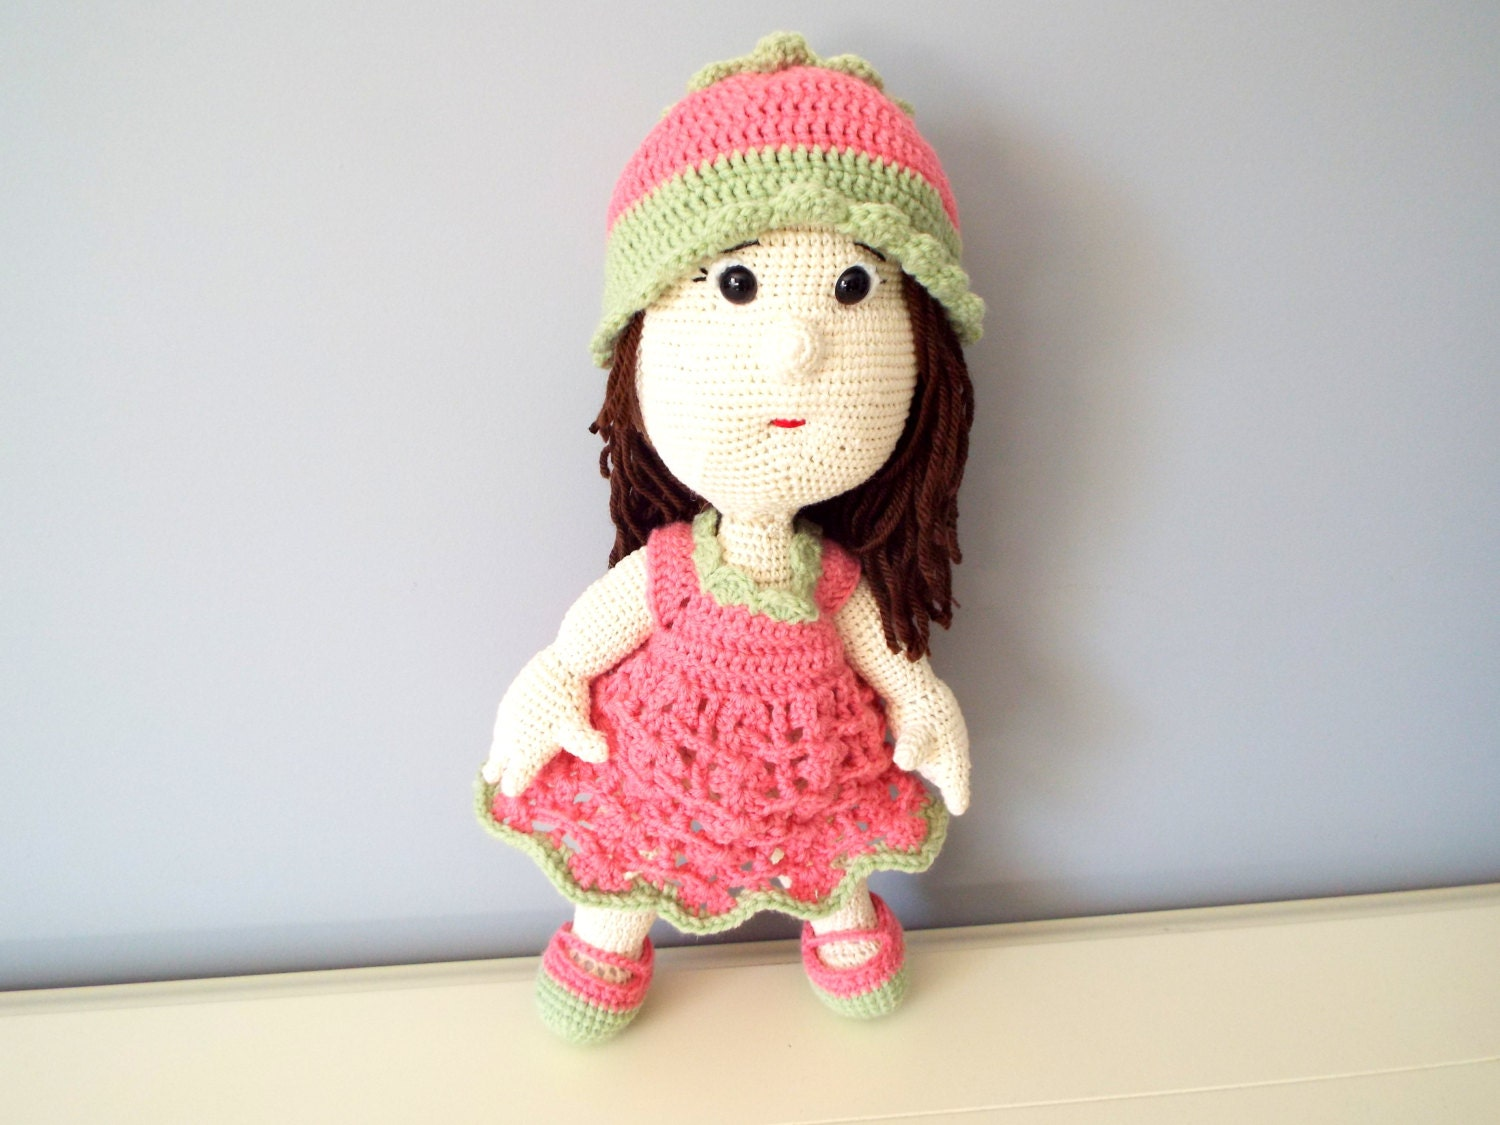 Crochet pink doll Kids Toys Baby shower Home decor Knitted doll ...